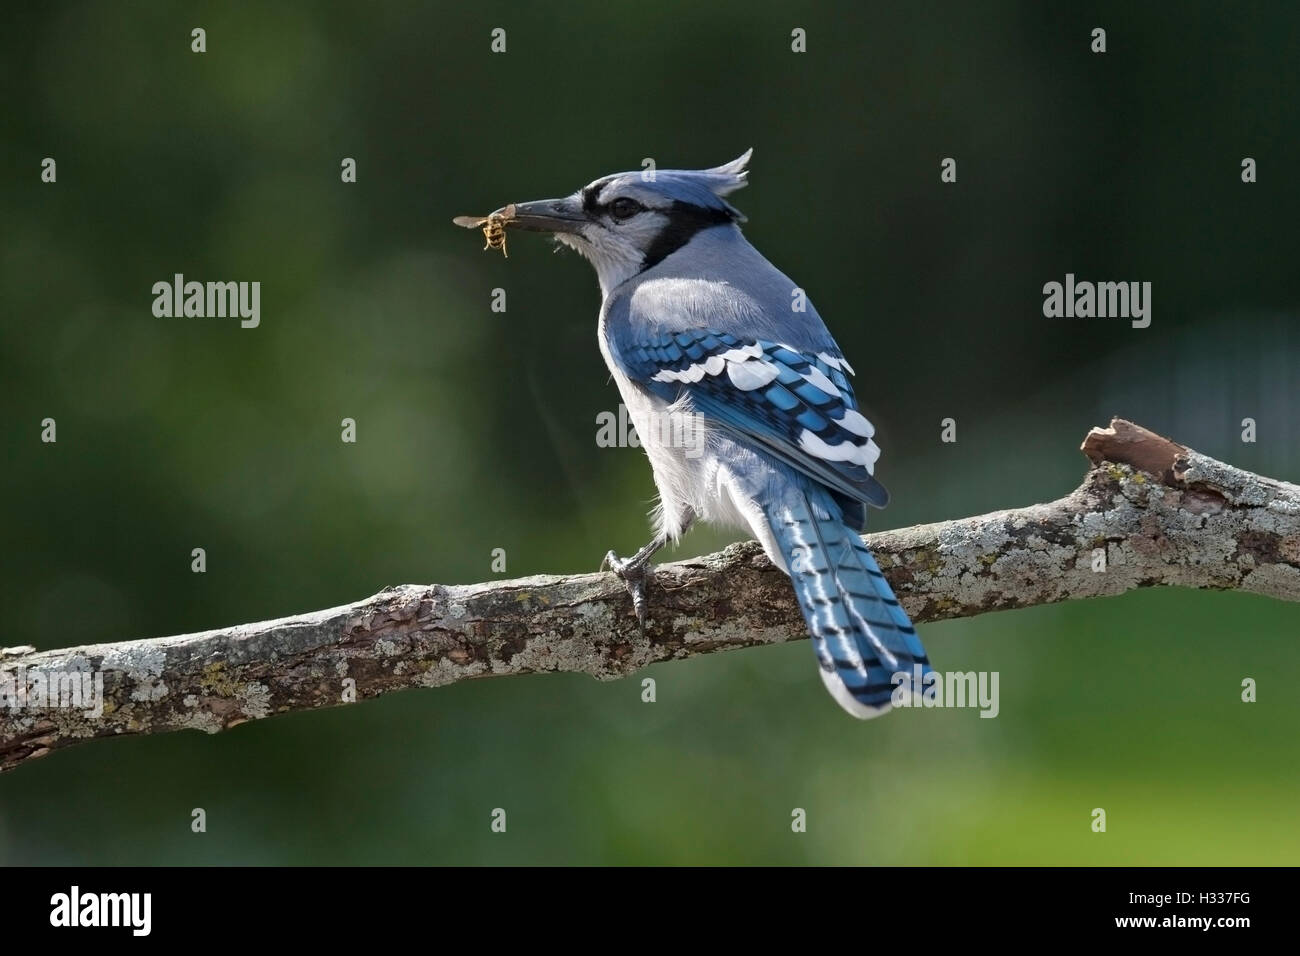 Blue jay with bee in beak perching on branch Stock Photo